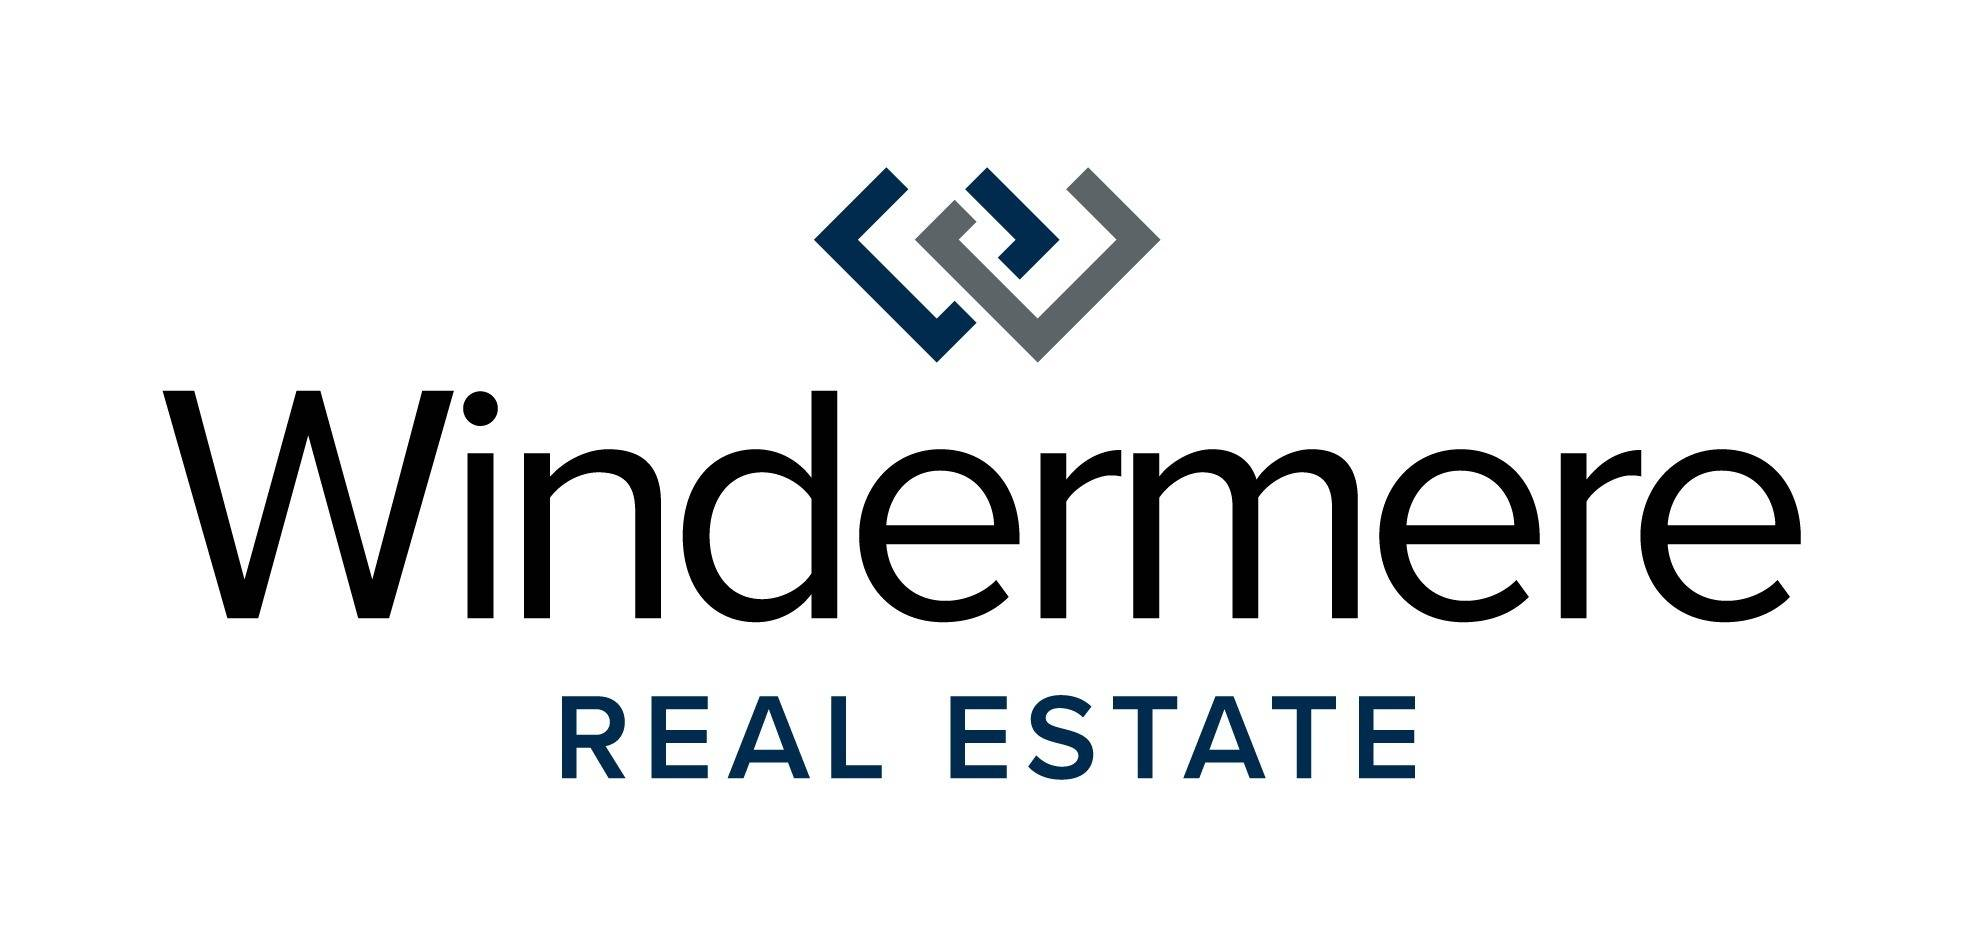 Windermere Real Estate Lane County